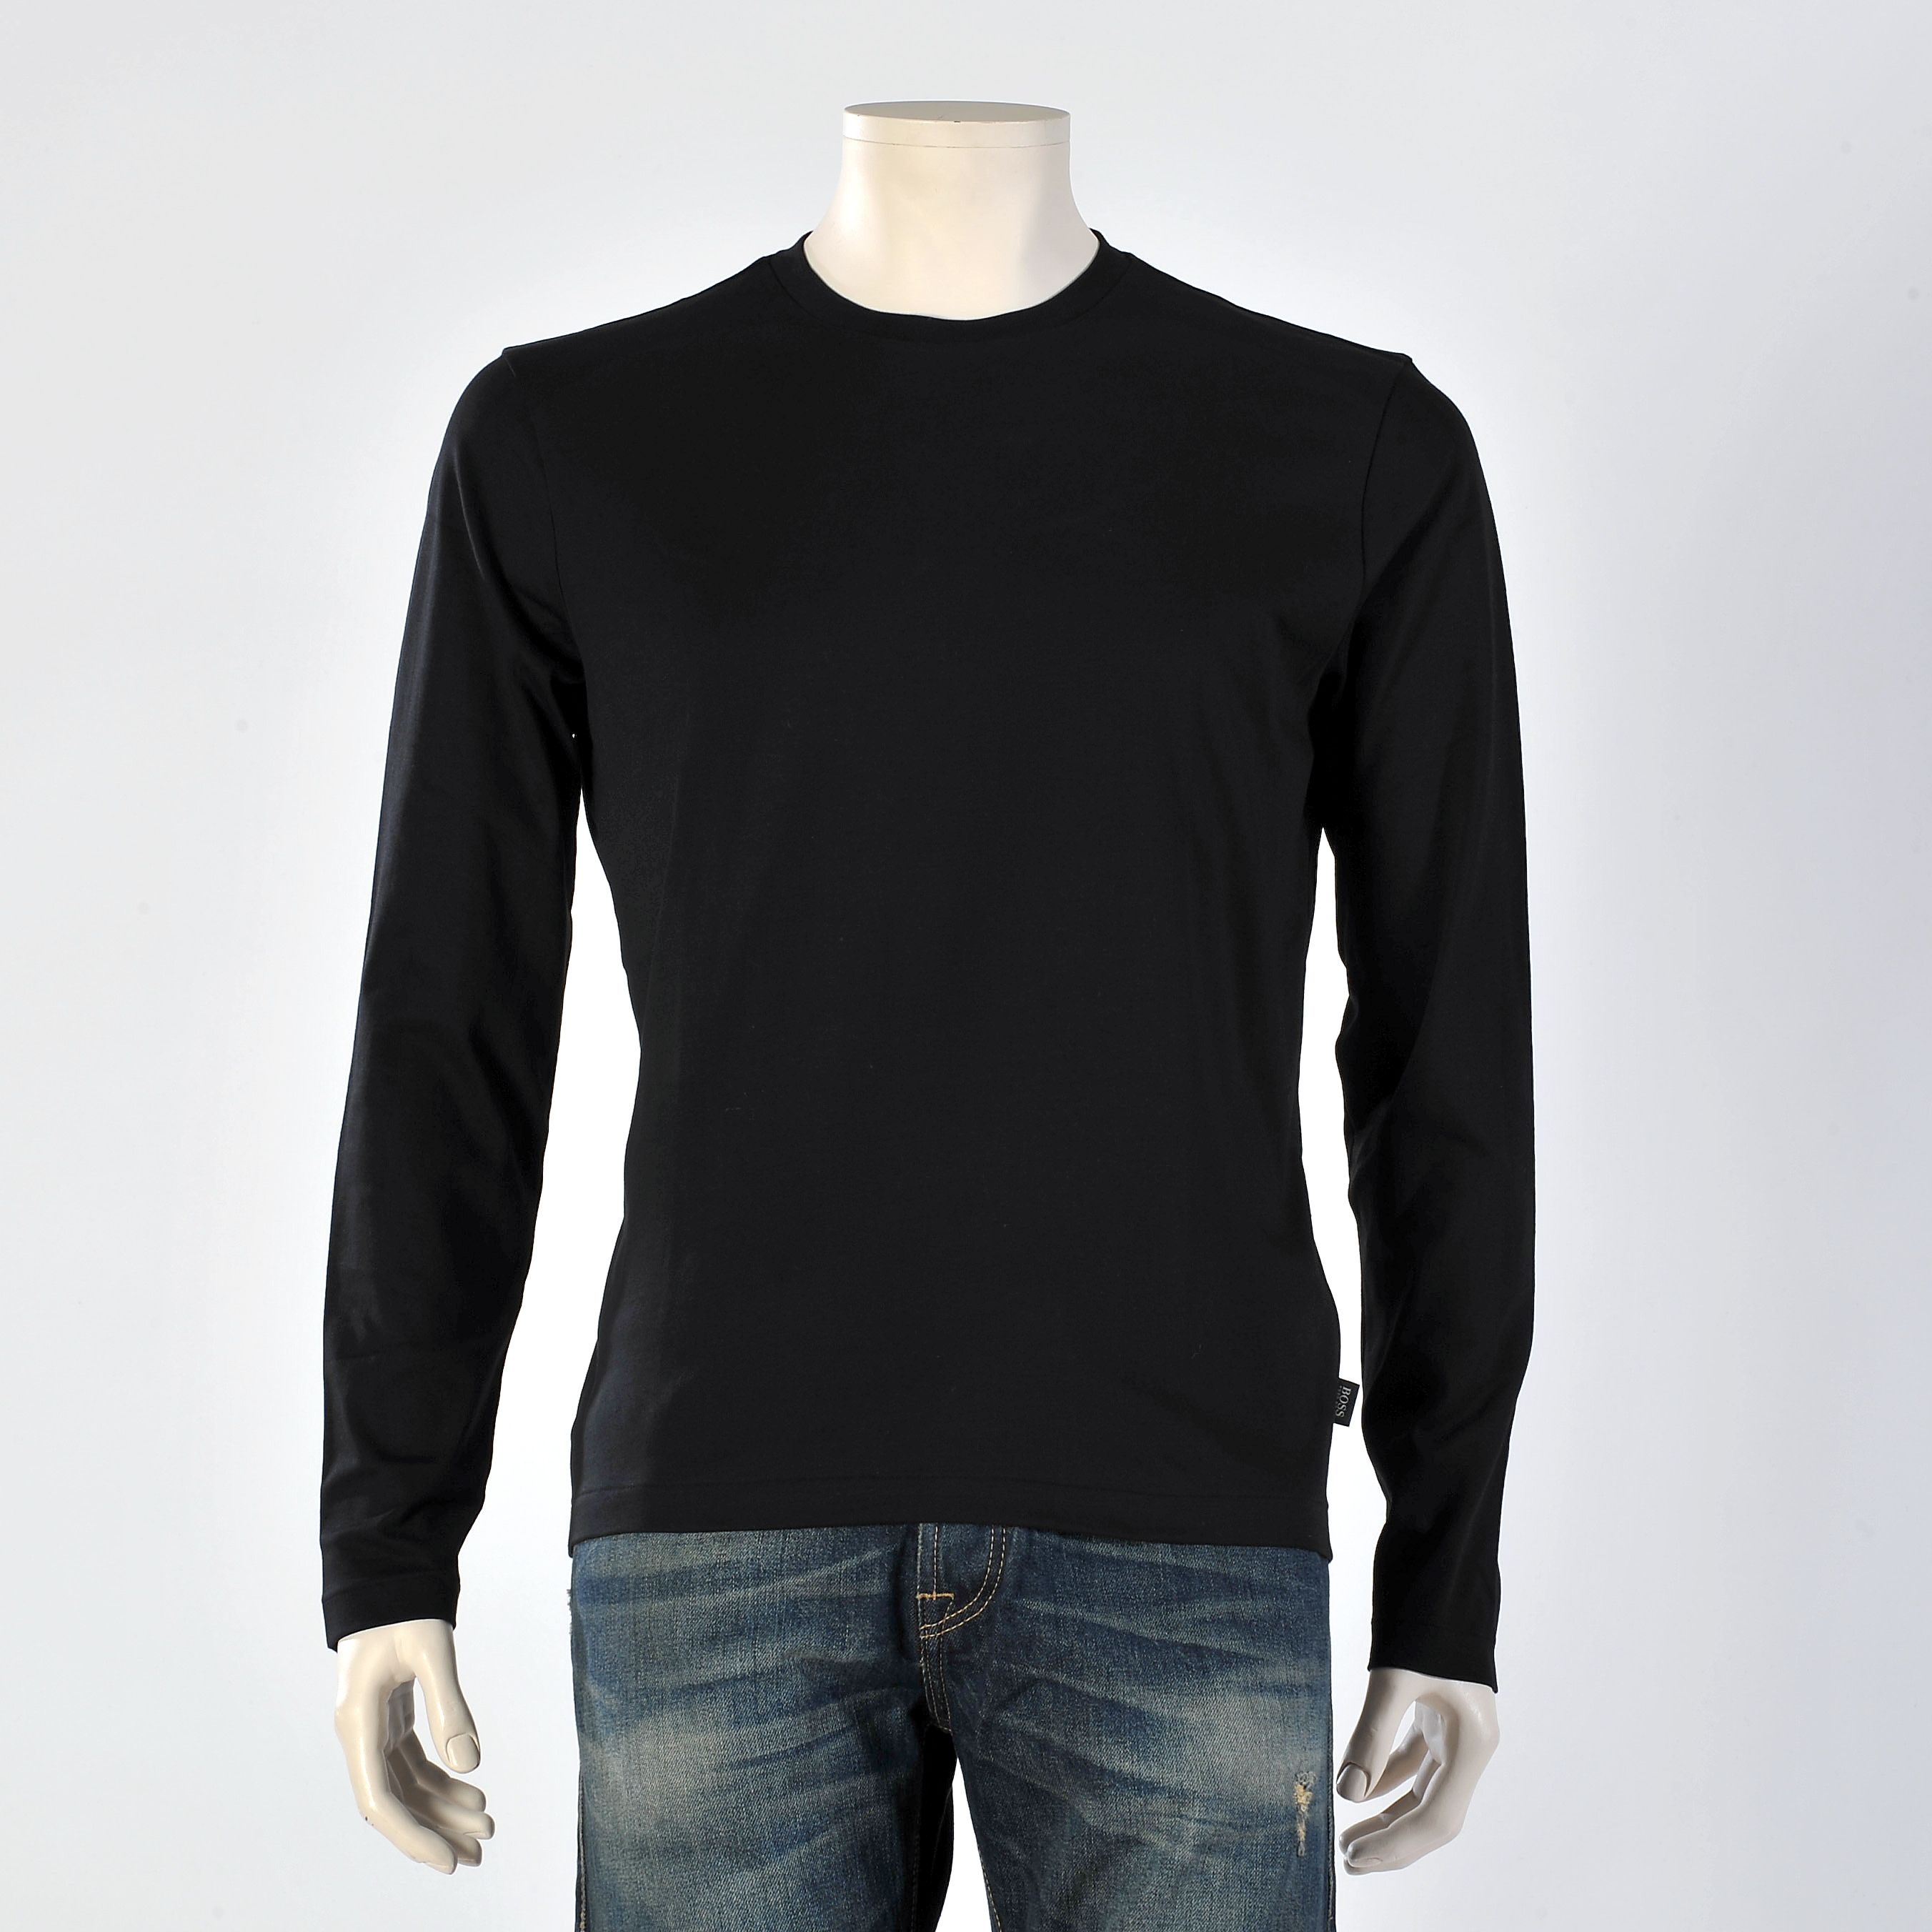 black long sleeve plain shirt | jumpsuit knitwear poloshirts ...